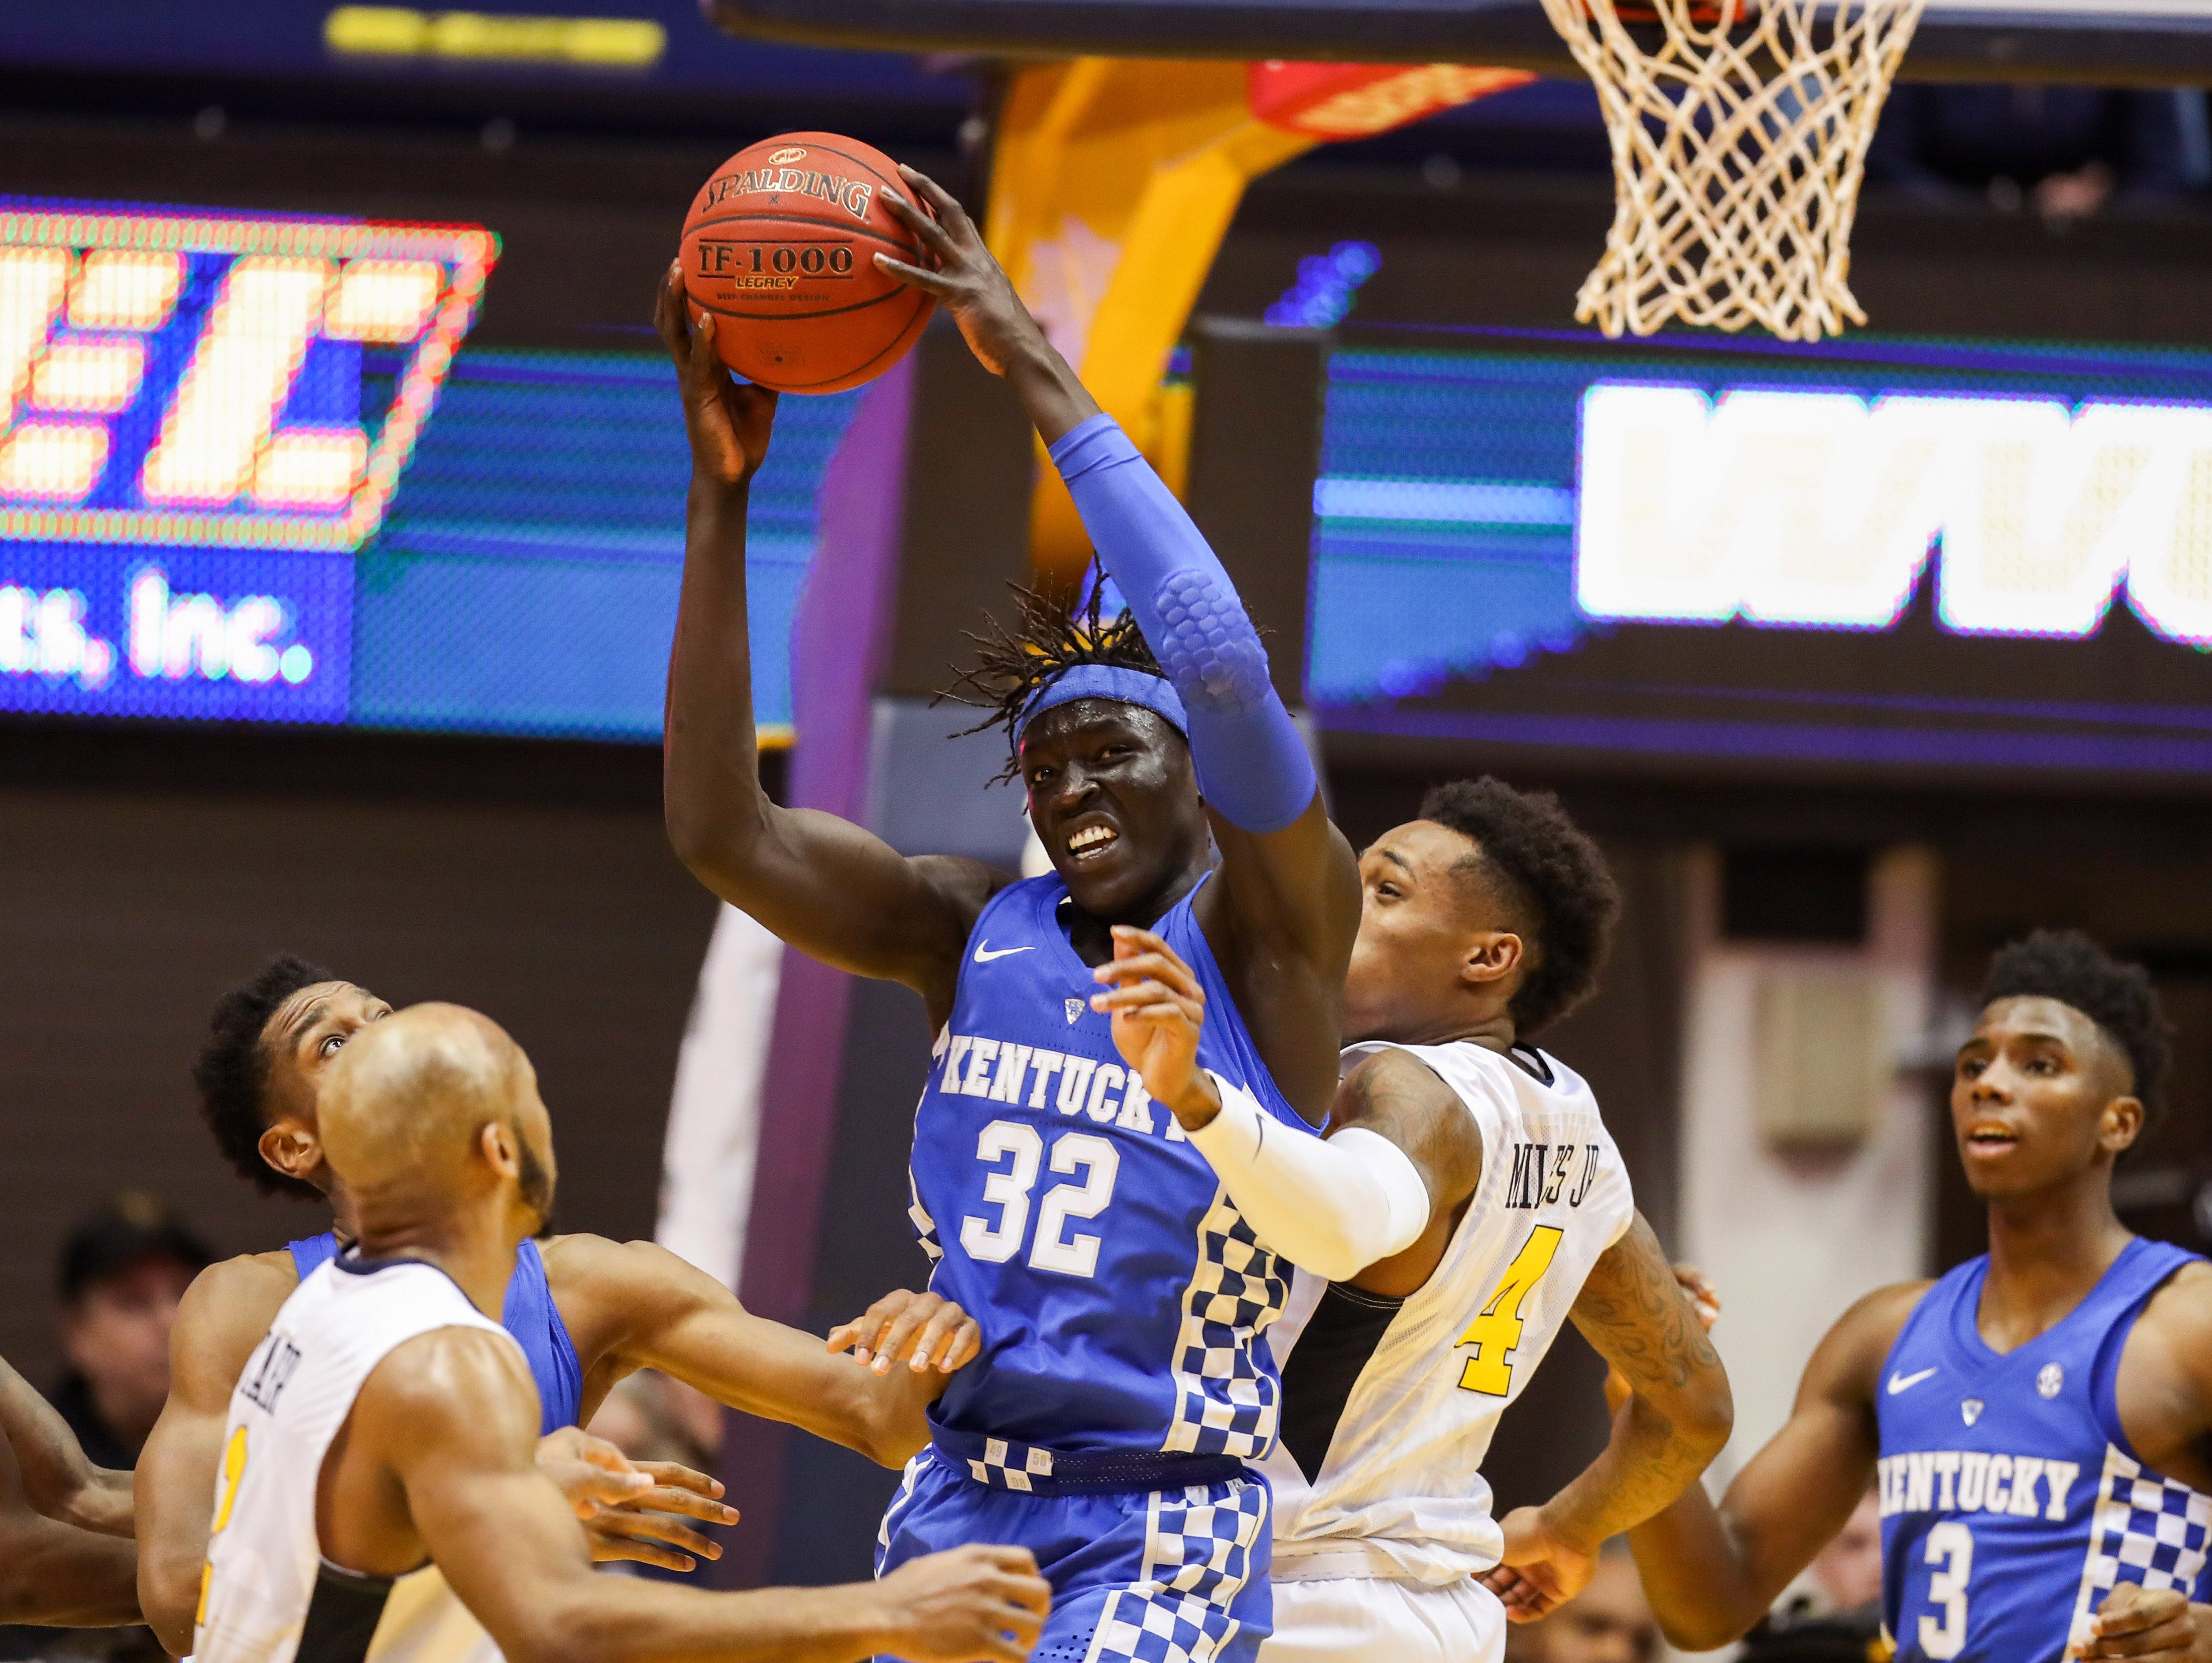 How To Watch Uk Basketball Play Etsu Game Time Tv: How To Watch Kentucky Basketball At Auburn: Game Time, TV